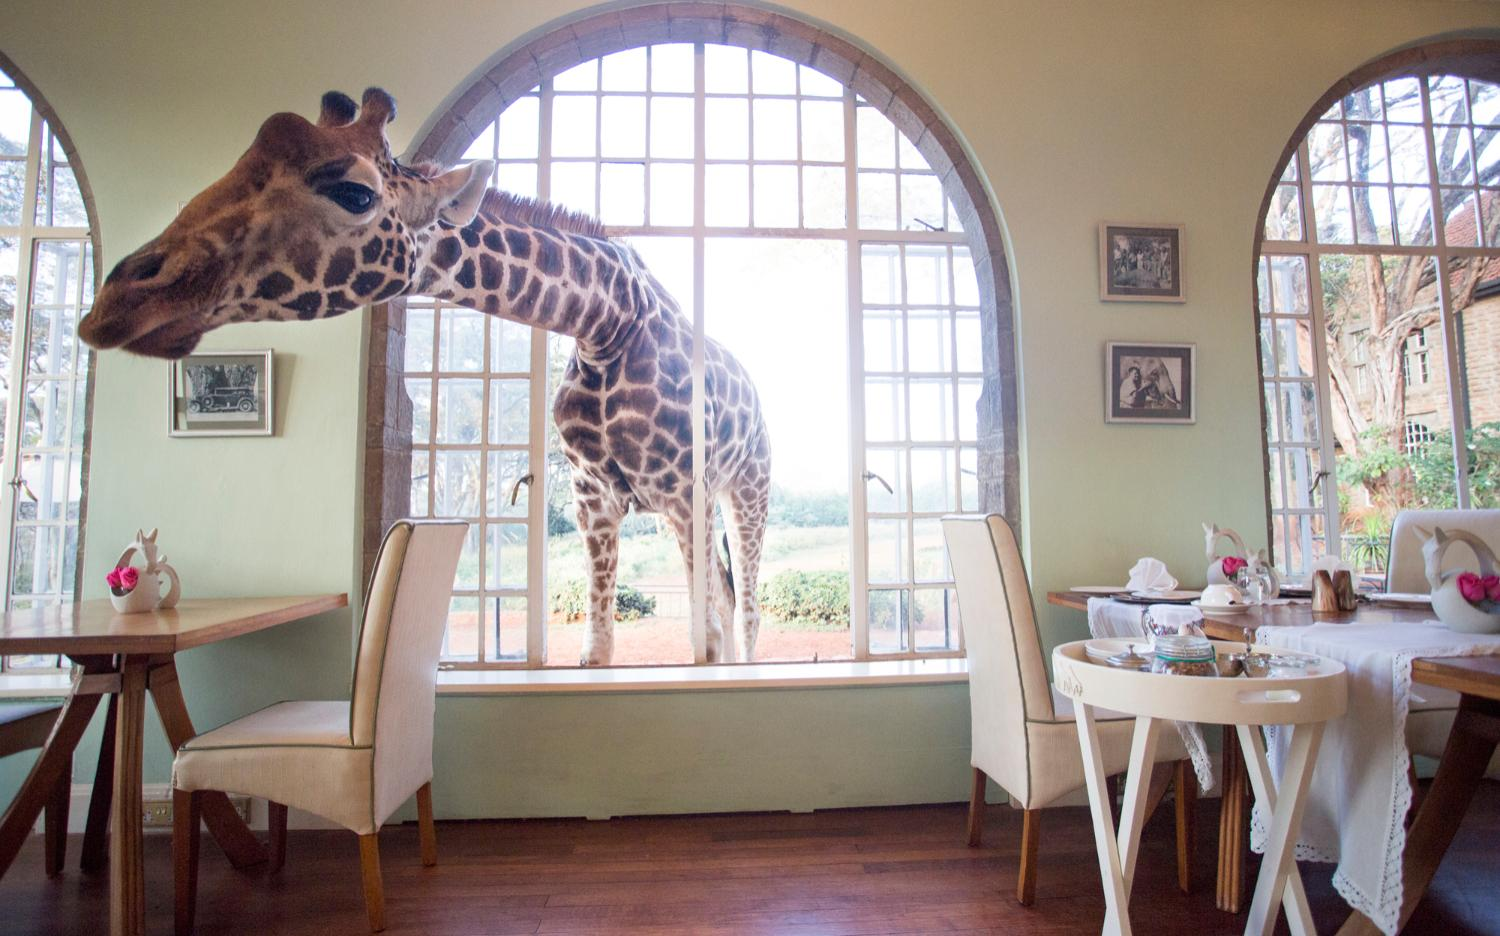 Giraffe Manor Lang'ata Nairobi – honeymoon destination